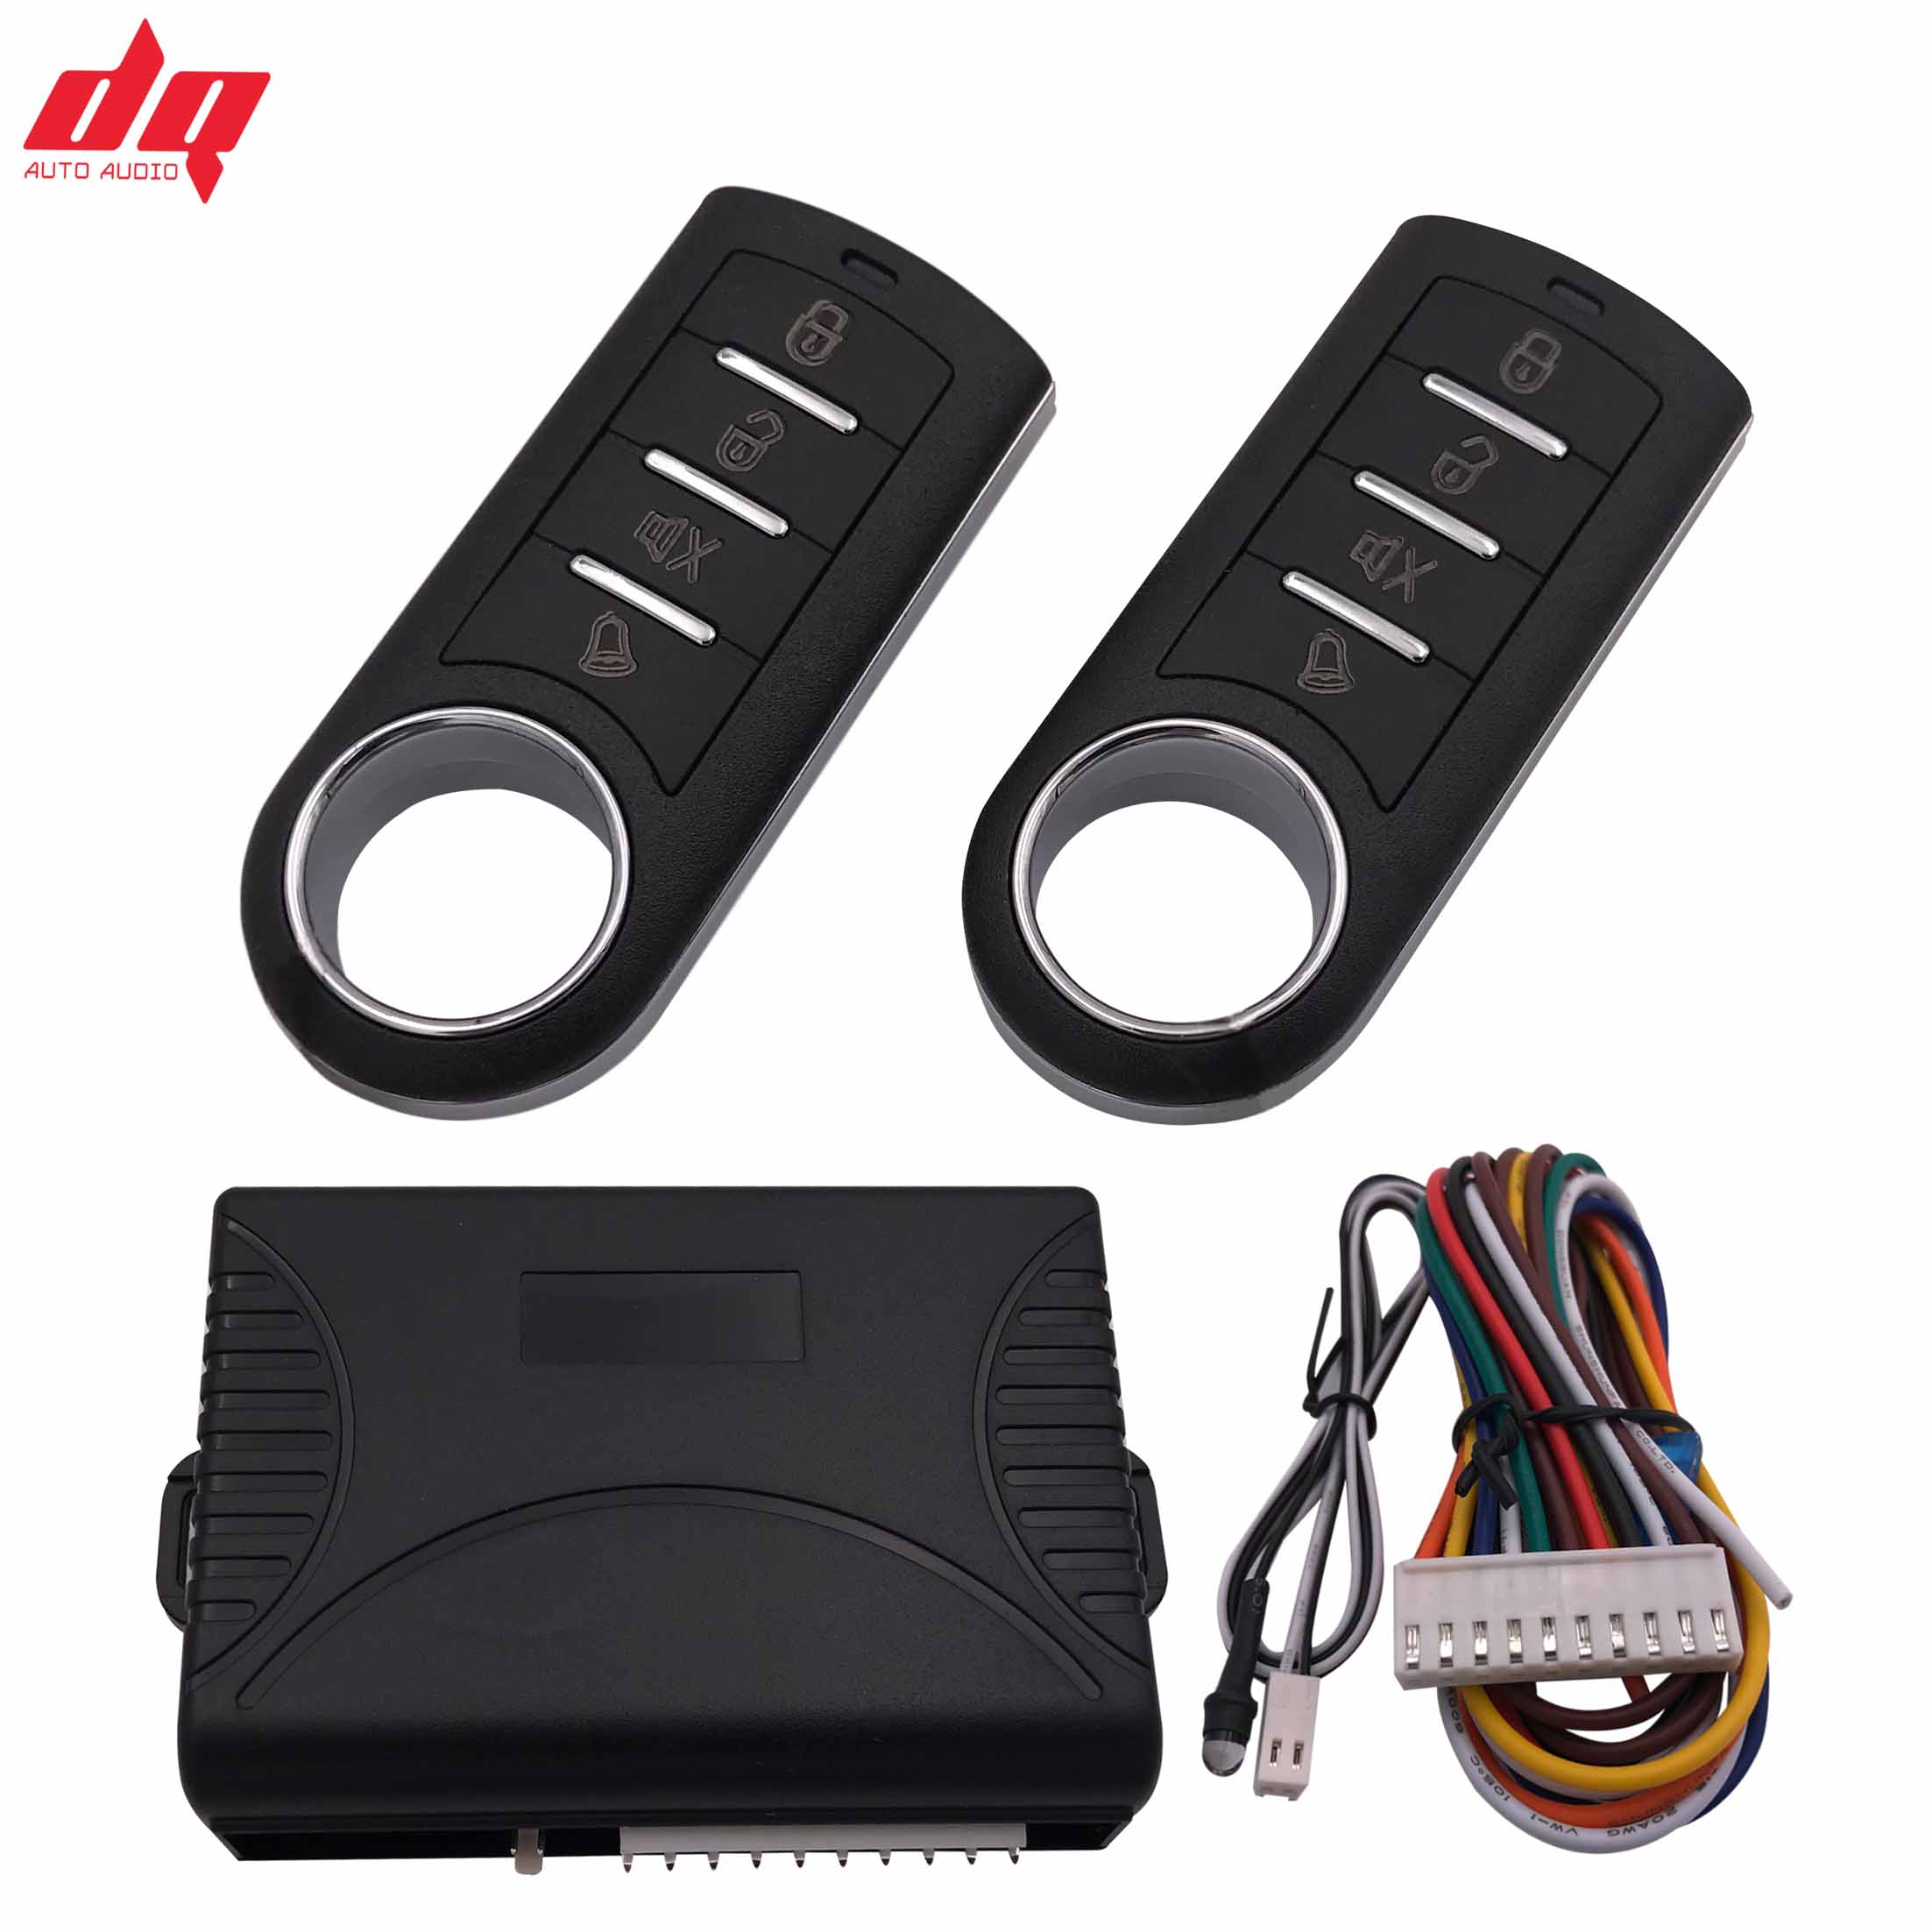 10P General Car Alarm System Auto Remote Central Kit Door Lock Locking System With Key Central Locking With Remote Control